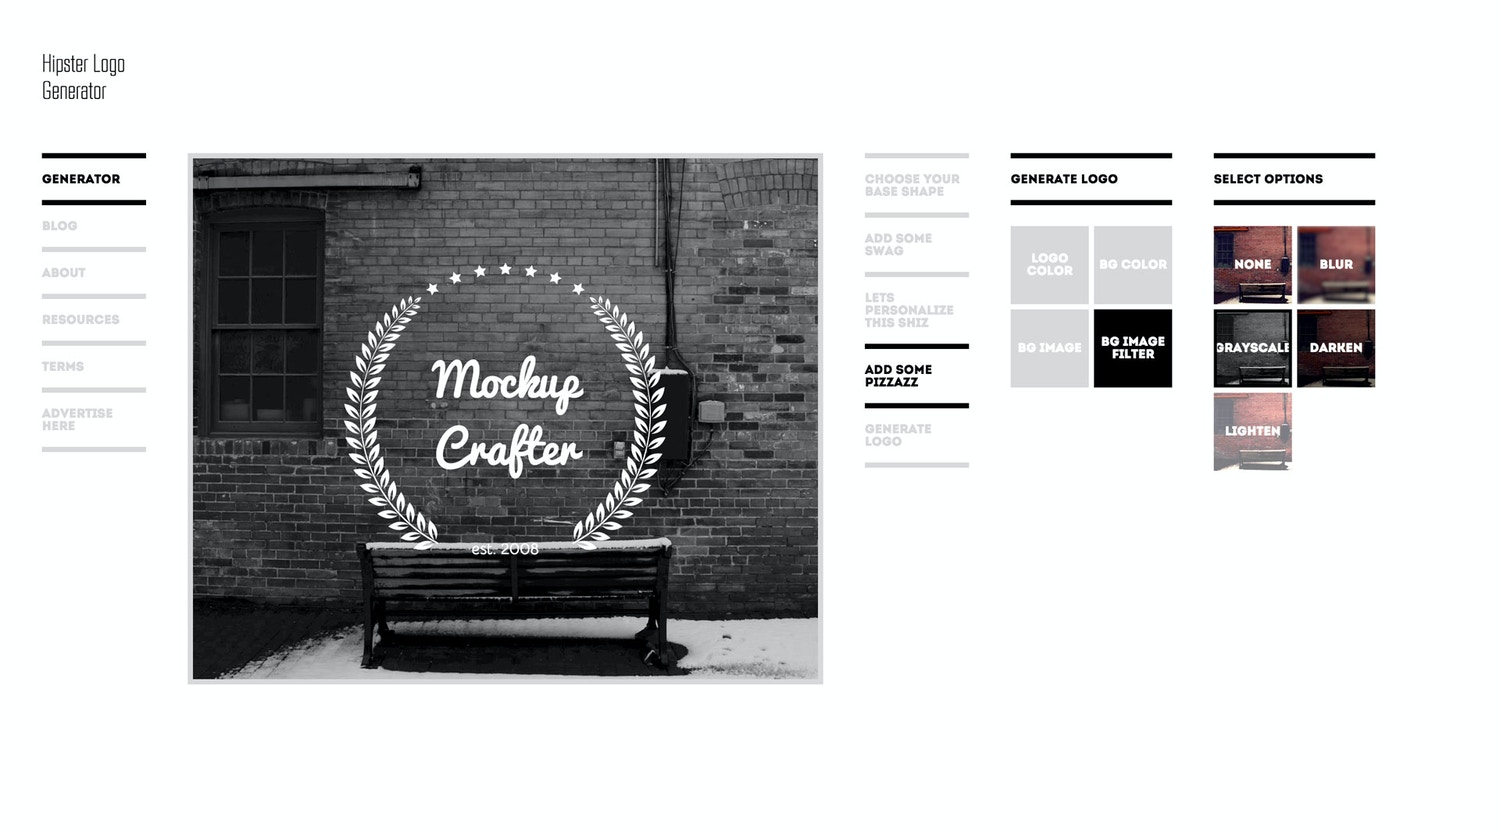 Need a Hipster Logo? Make Your Own For Free With This. by Original Mockups on Original Mockups